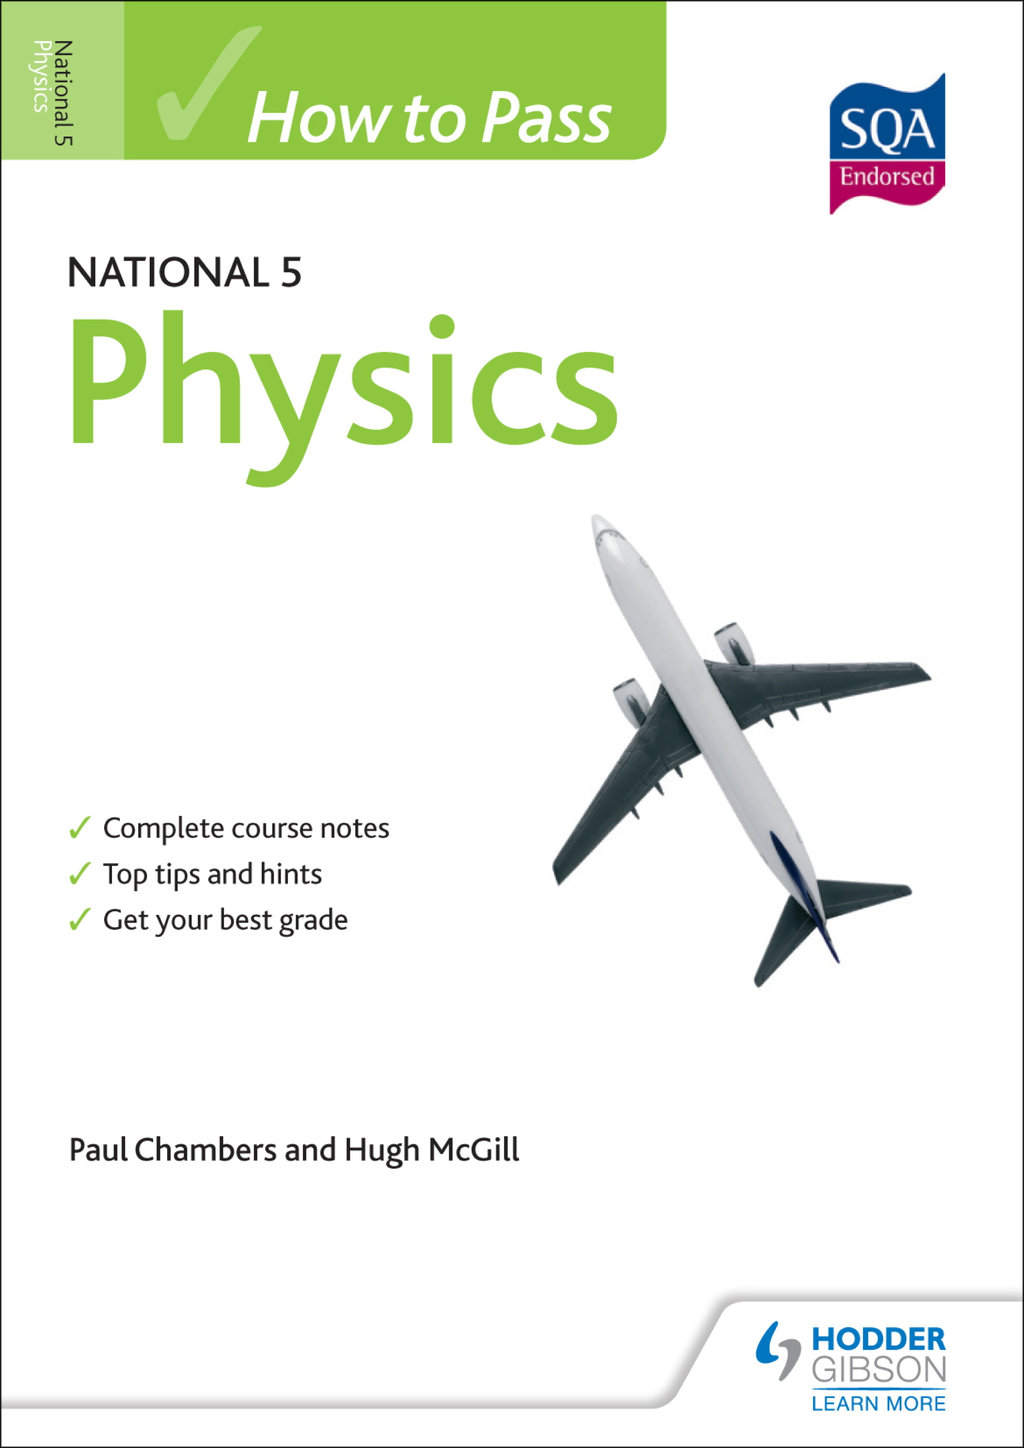 How to Pass National 5 Physics ePub